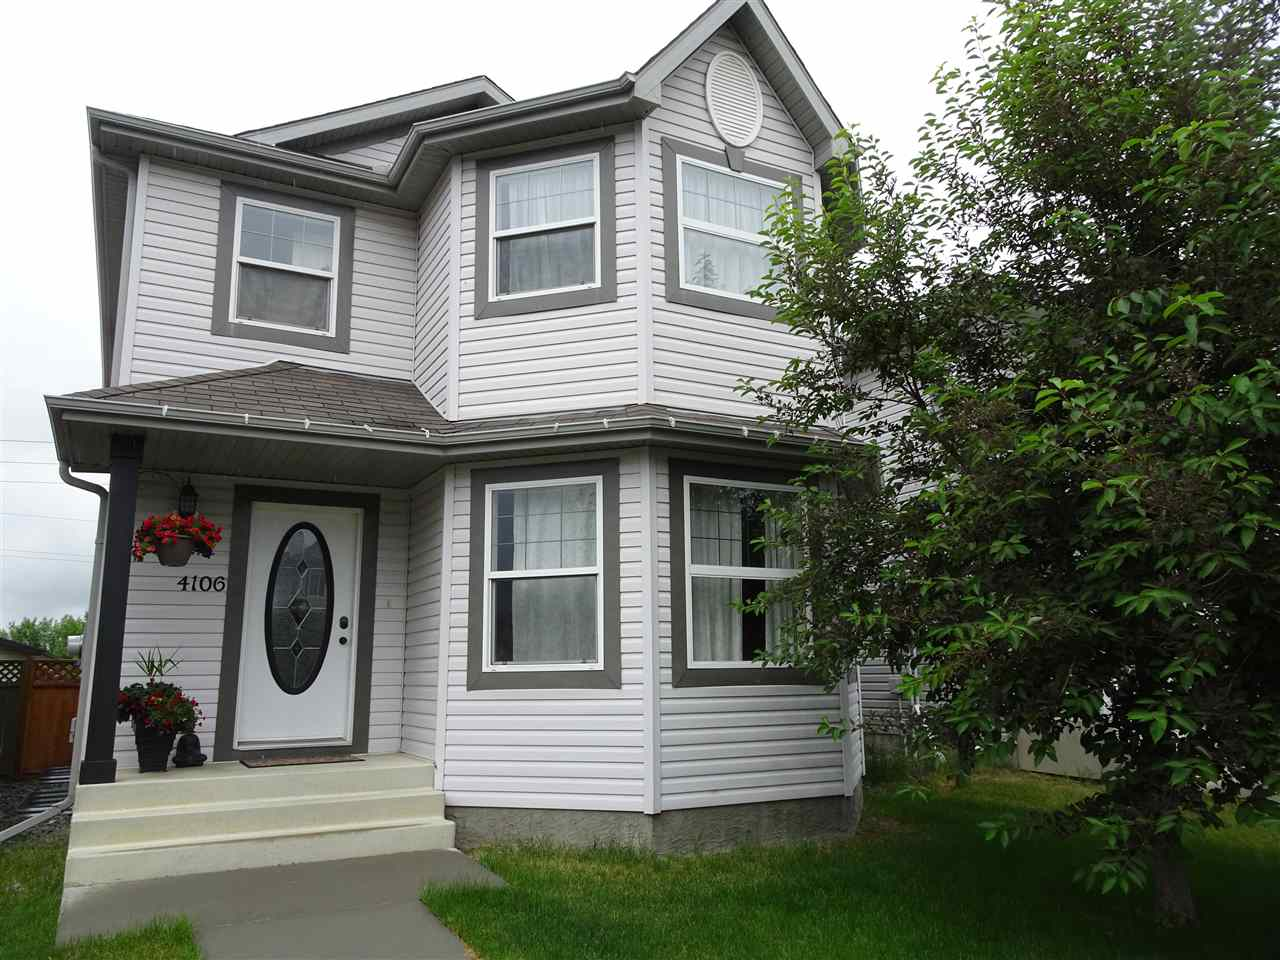 Main Photo: 4106 158 Avenue in Edmonton: Zone 03 House for sale : MLS(r) # E4069517